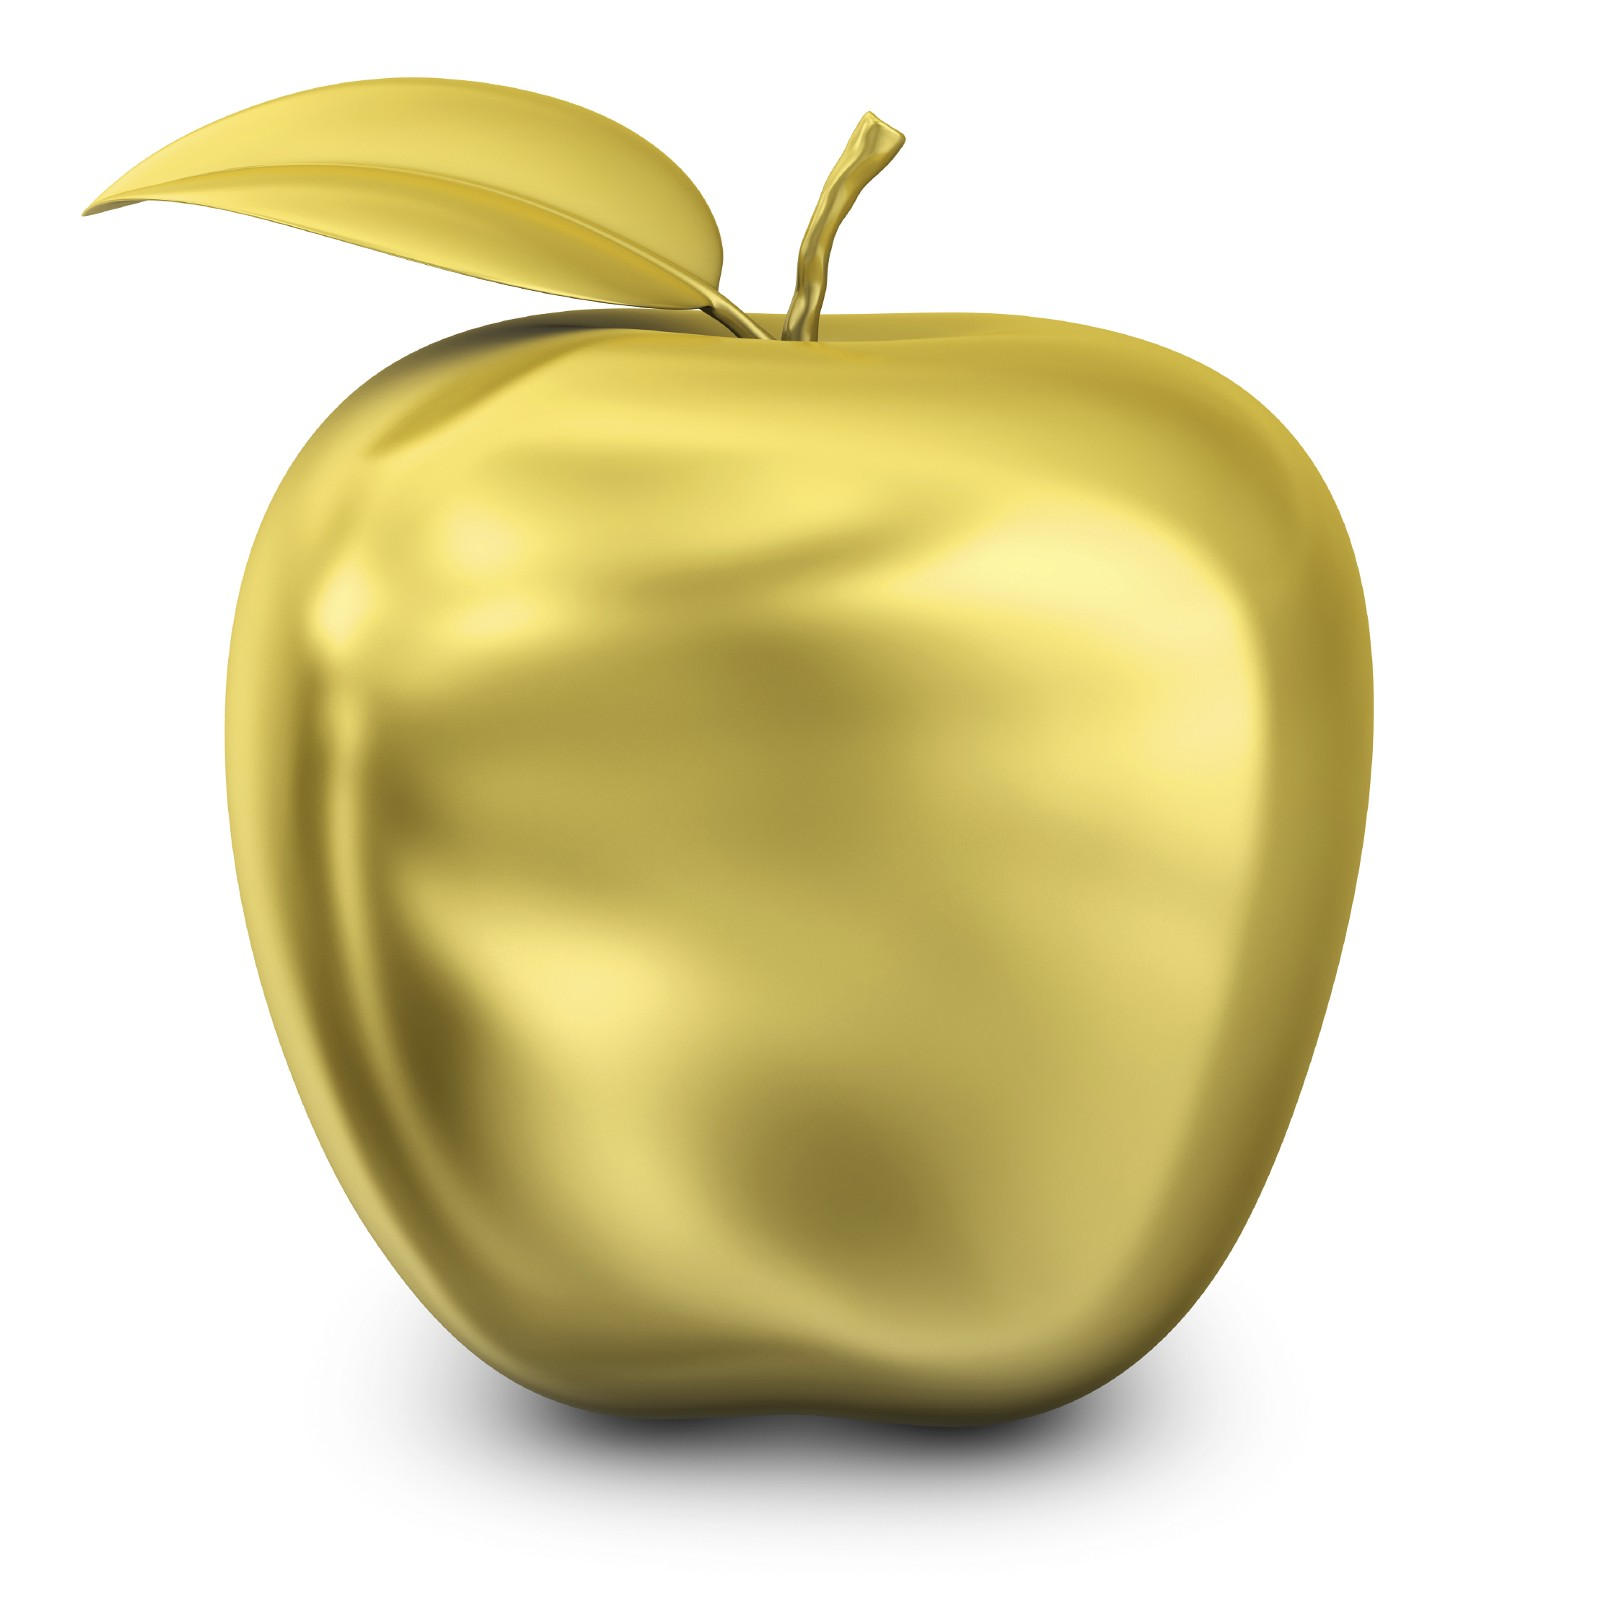 Cached Golden apple software photo captions